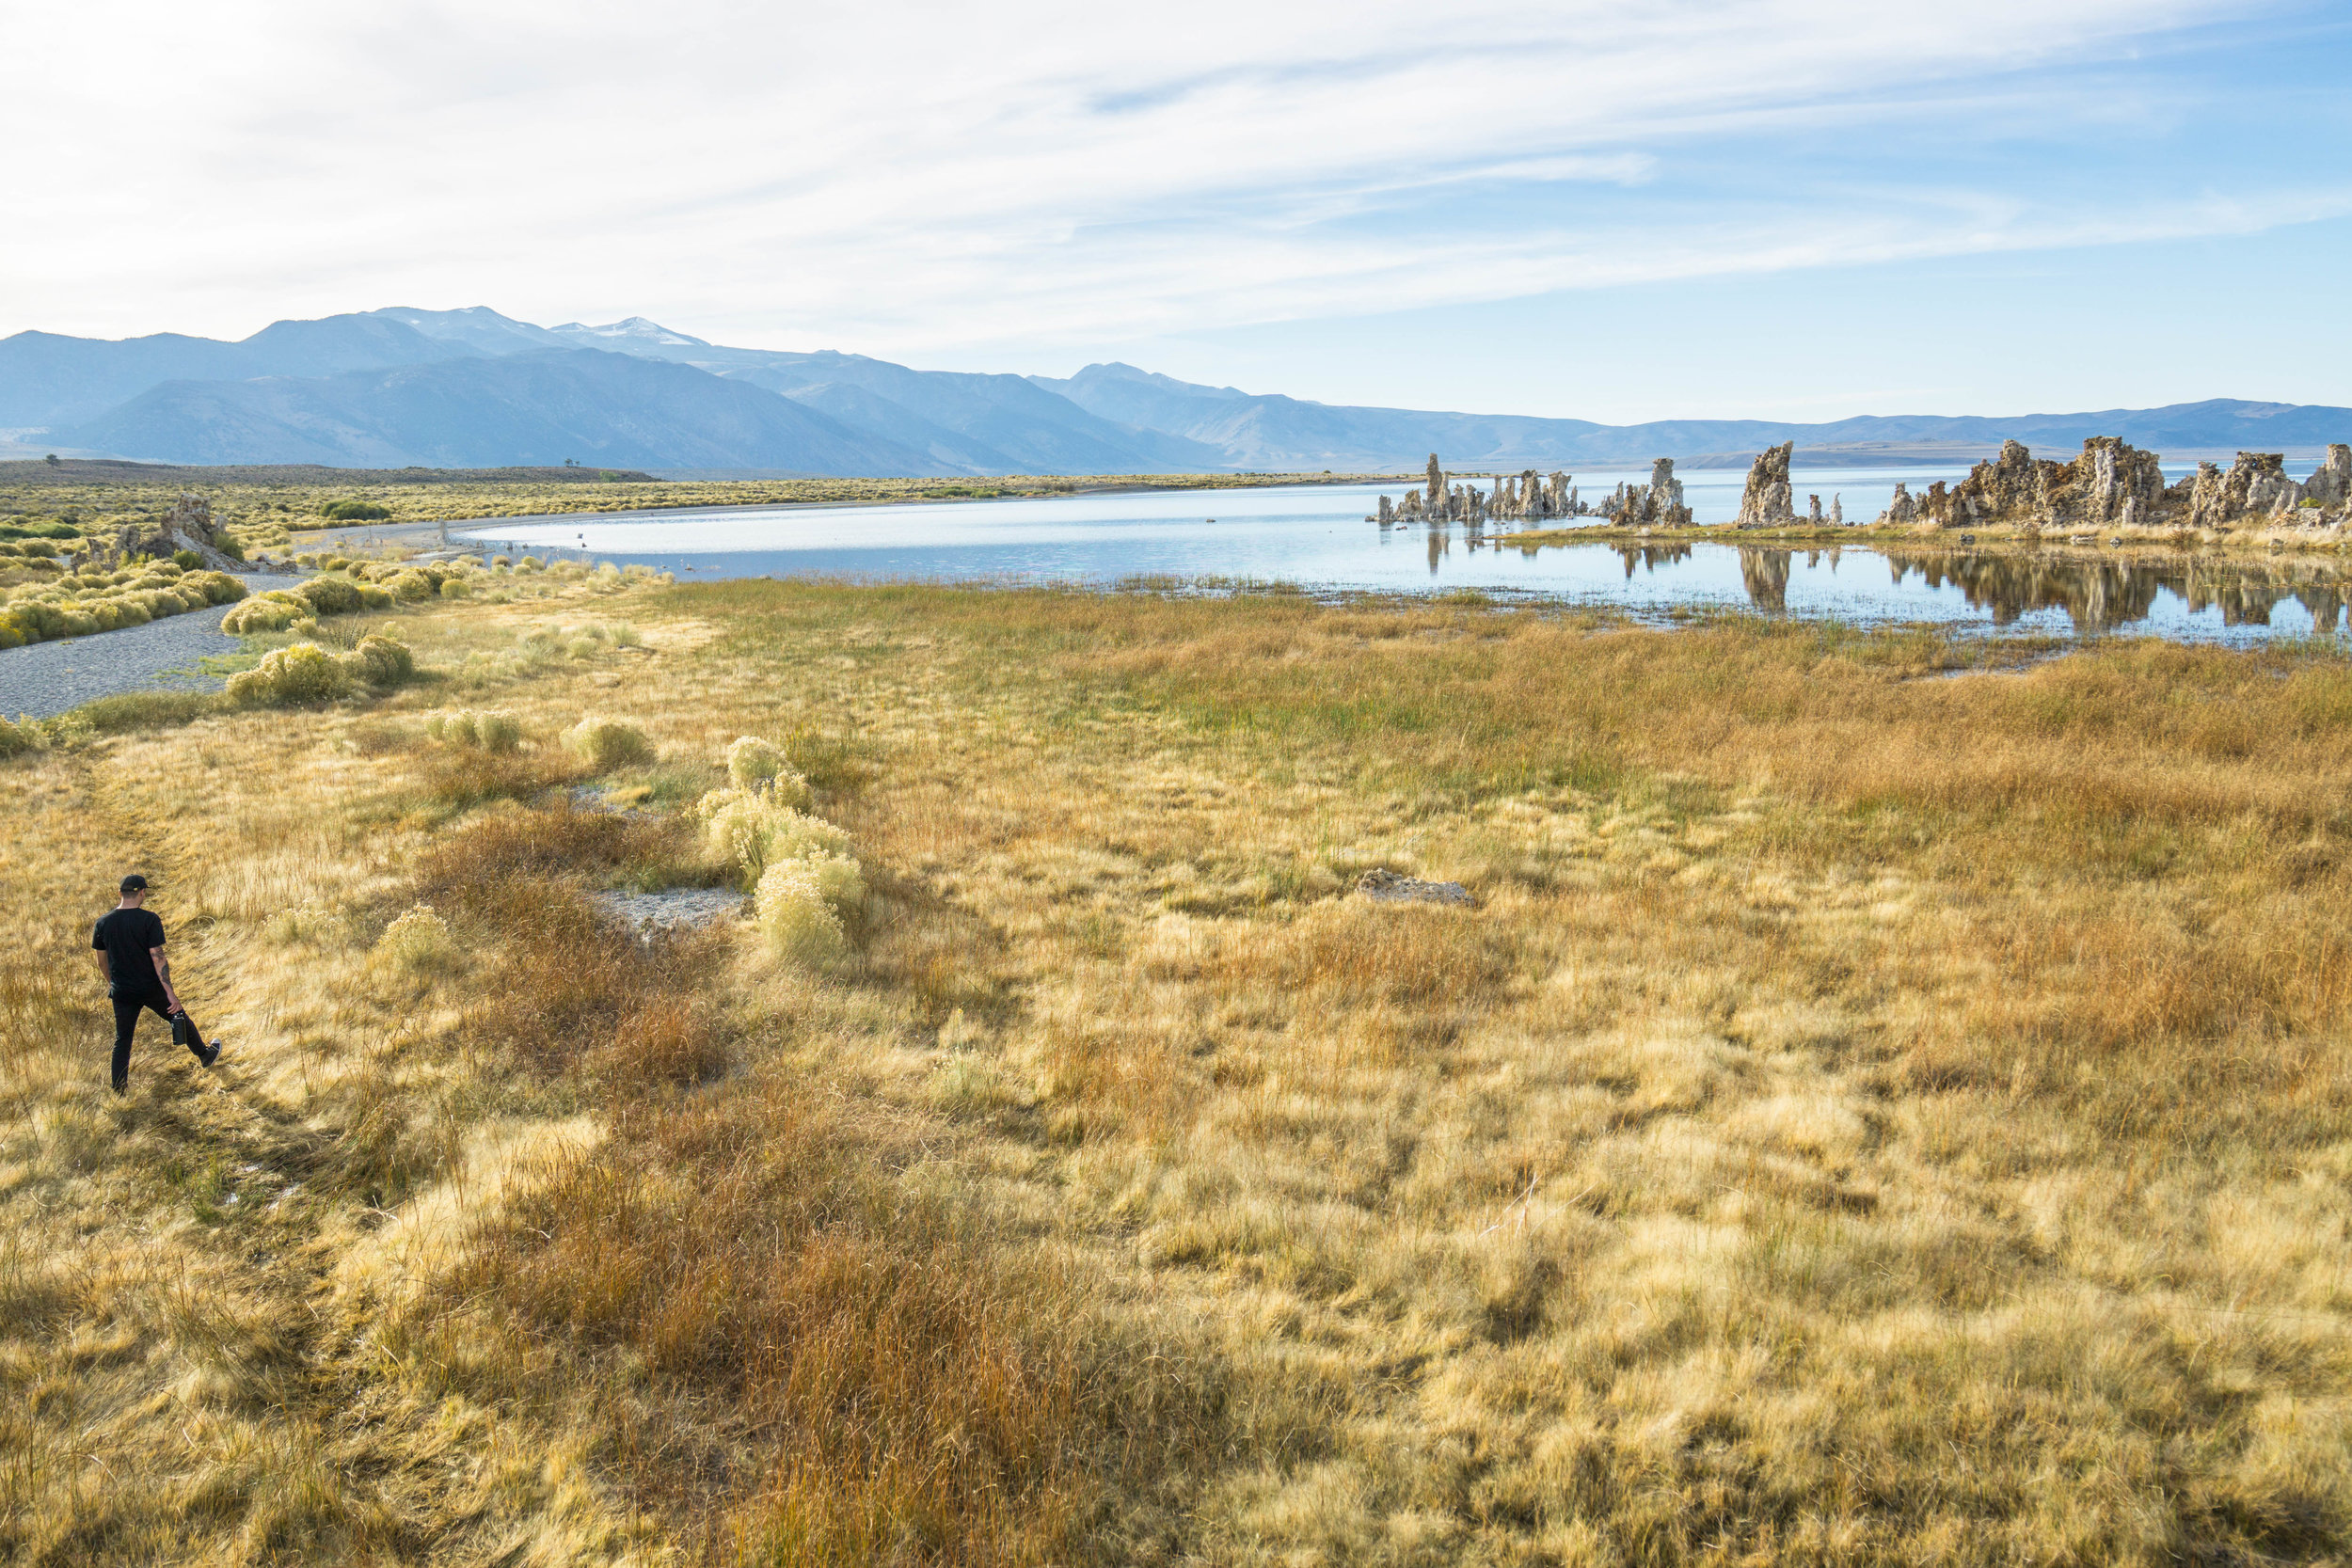 Leaving the leaves behind, we wander towards the spacey Mono Lake with its alien-looking tufa towers.